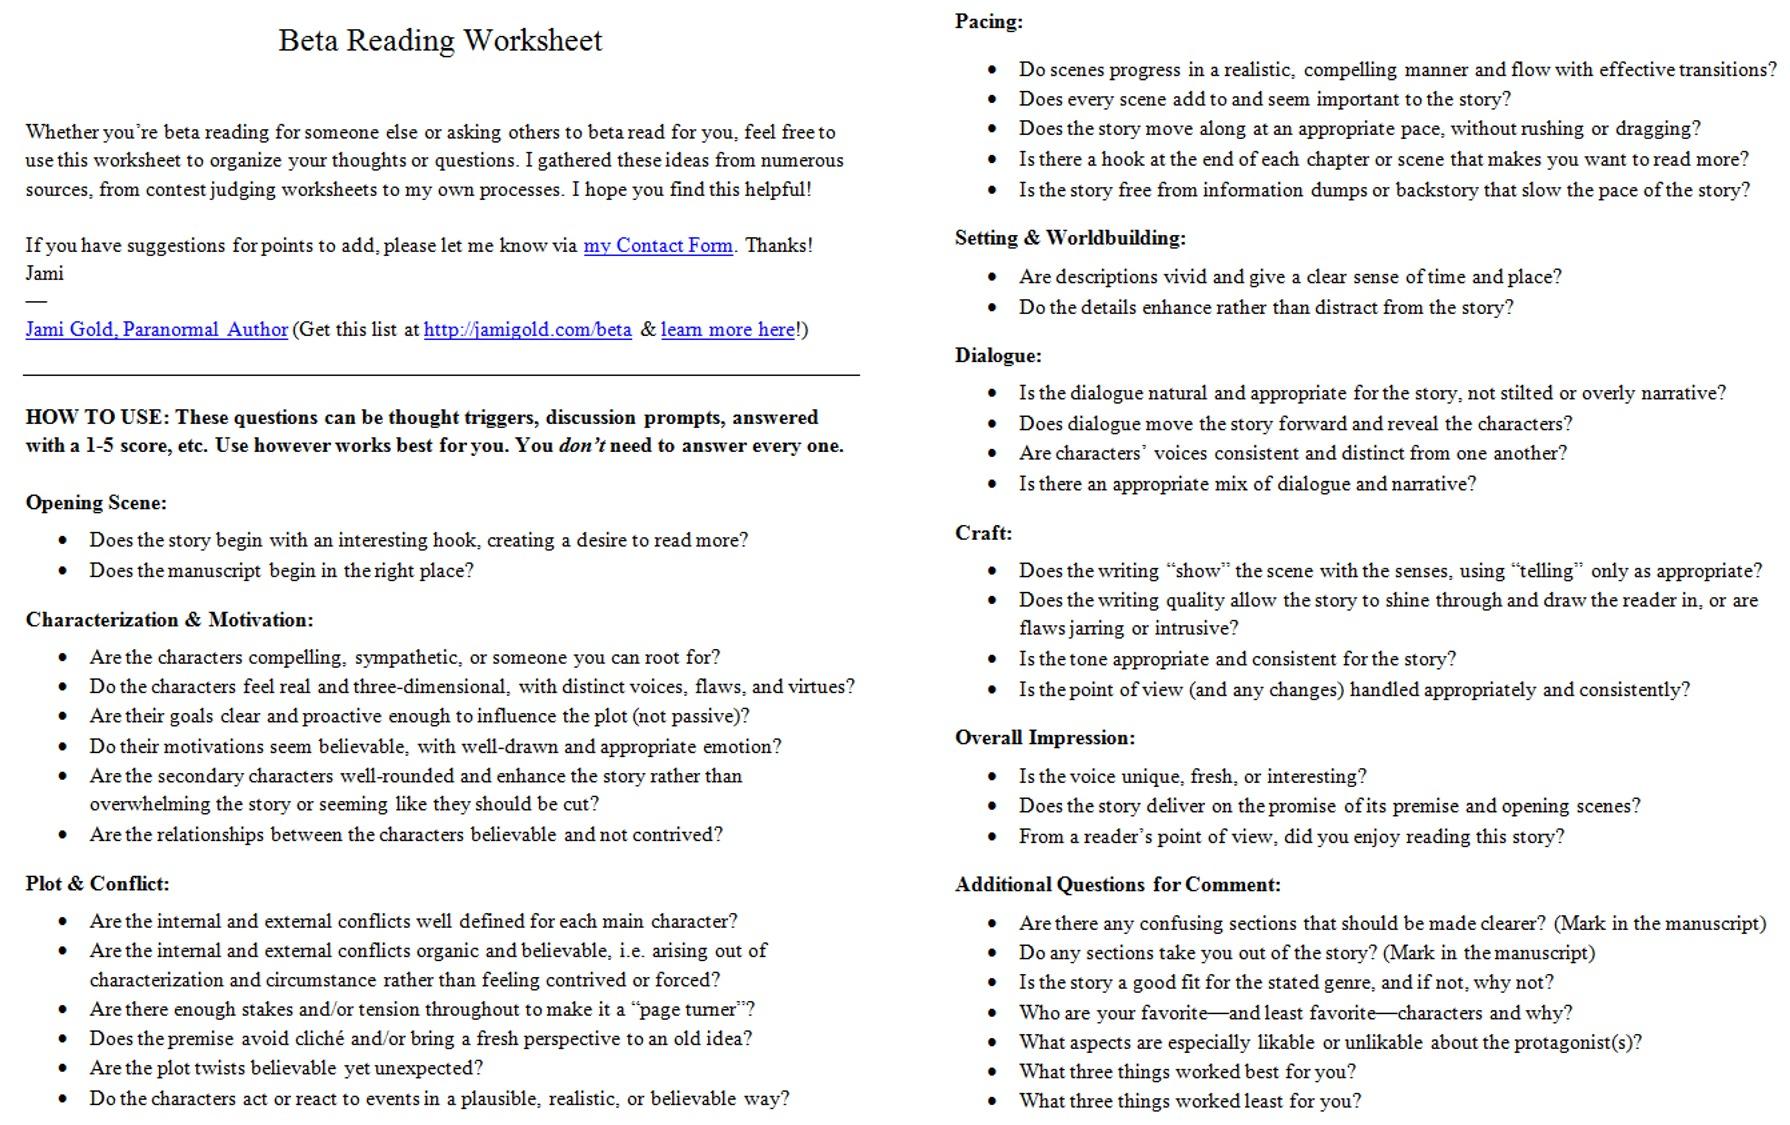 Weirdmailus  Pleasing Worksheets For Writers  Jami Gold Paranormal Author With Heavenly Screen Shot Of The Twopage Beta Reading Worksheet With Adorable Grade  Multiplication Worksheets Also Home Budget Worksheet Pdf In Addition Doubling And Halving Worksheets And Step  Aa Worksheet As Well As Reading Comprehension Worksheets Grade  Additionally Comparing And Contrasting Worksheet From Jamigoldcom With Weirdmailus  Heavenly Worksheets For Writers  Jami Gold Paranormal Author With Adorable Screen Shot Of The Twopage Beta Reading Worksheet And Pleasing Grade  Multiplication Worksheets Also Home Budget Worksheet Pdf In Addition Doubling And Halving Worksheets From Jamigoldcom